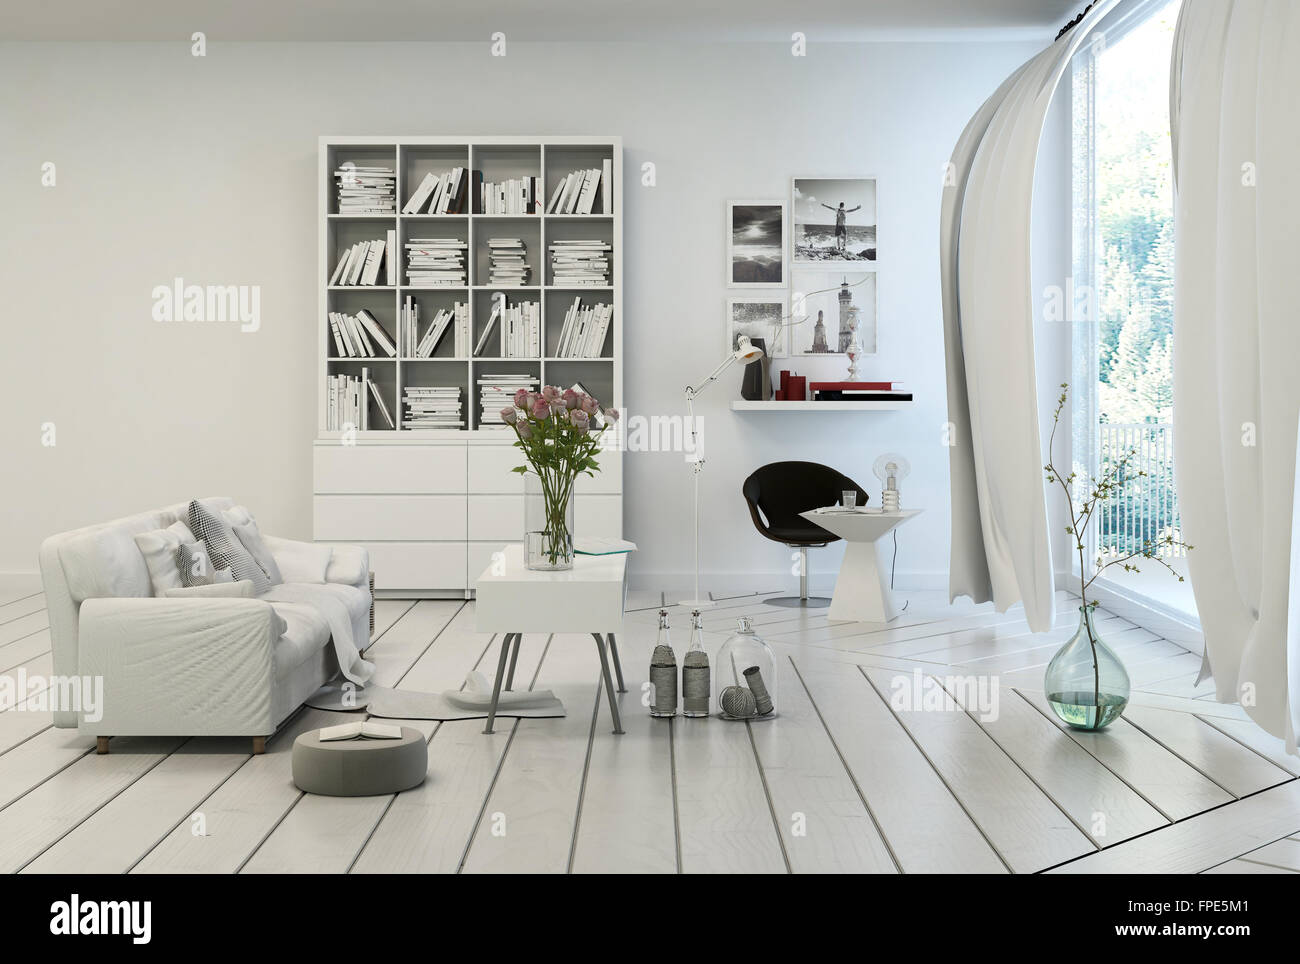 Compact modern white living room interior with white painted wooden ...